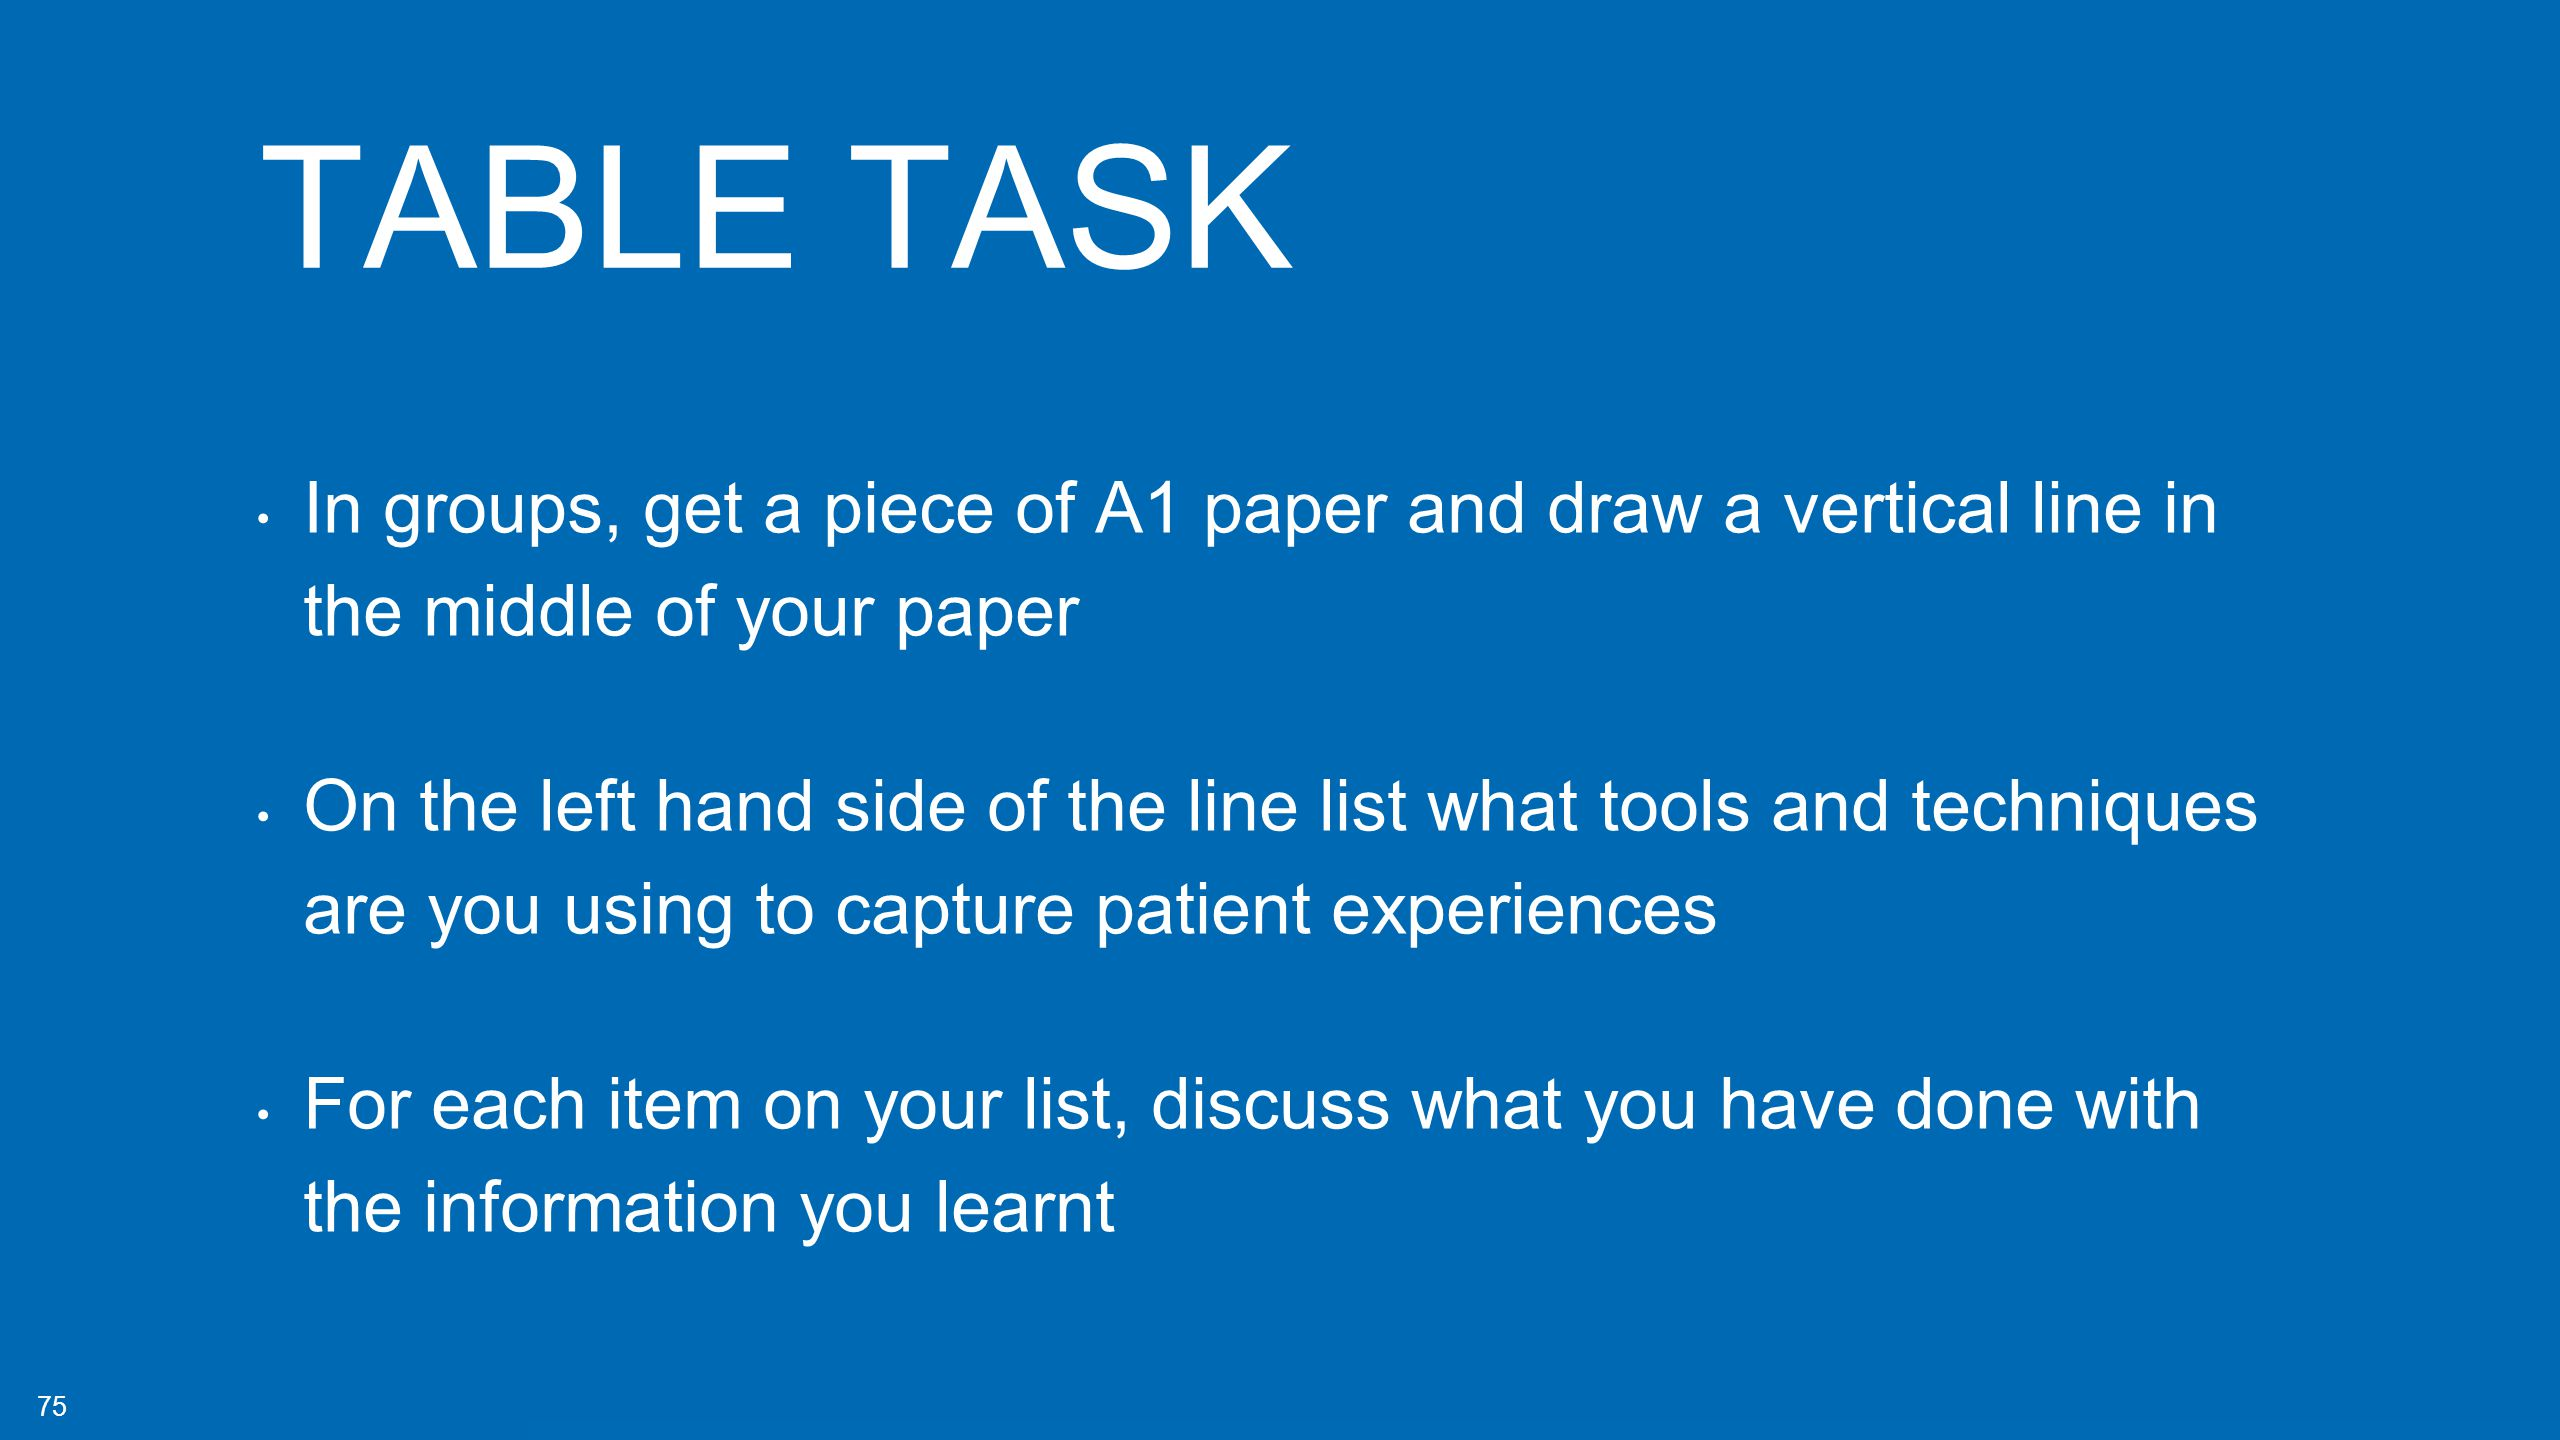 75 TABLE TASK In groups, get a piece of A1 paper and draw a vertical line in the middle of your paper On the left hand side of the line list what tools and techniques are you using to capture patient experiences For each item on your list, discuss what you have done with the information you learnt